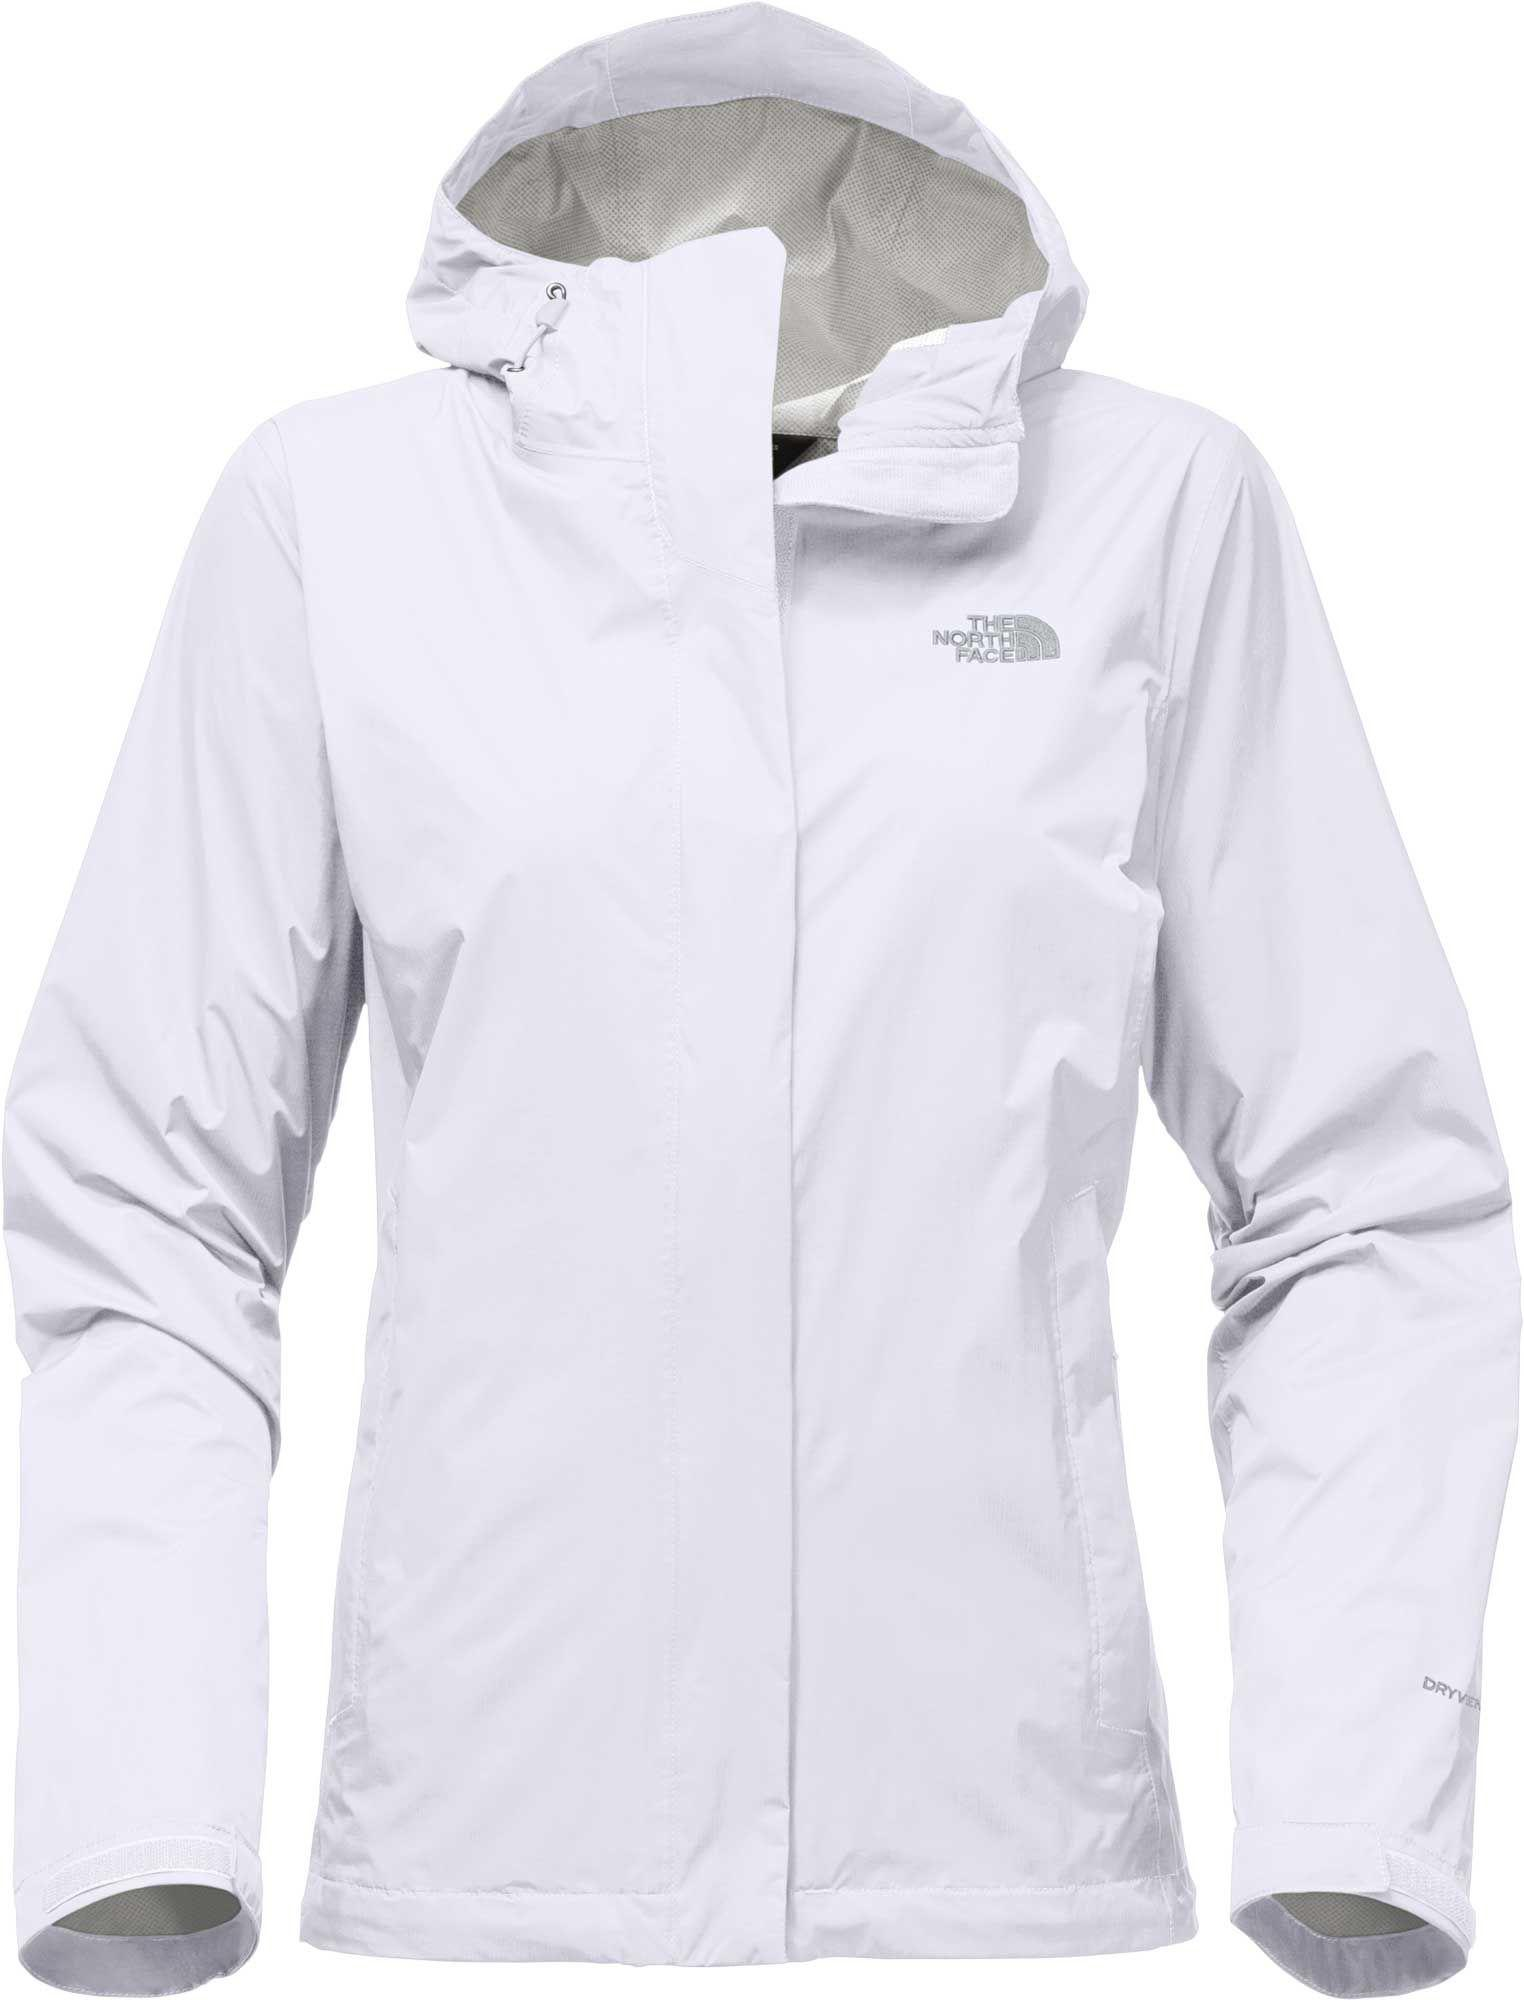 95317145ca75 Lyst - The North Face Venture 2 Jacket in White